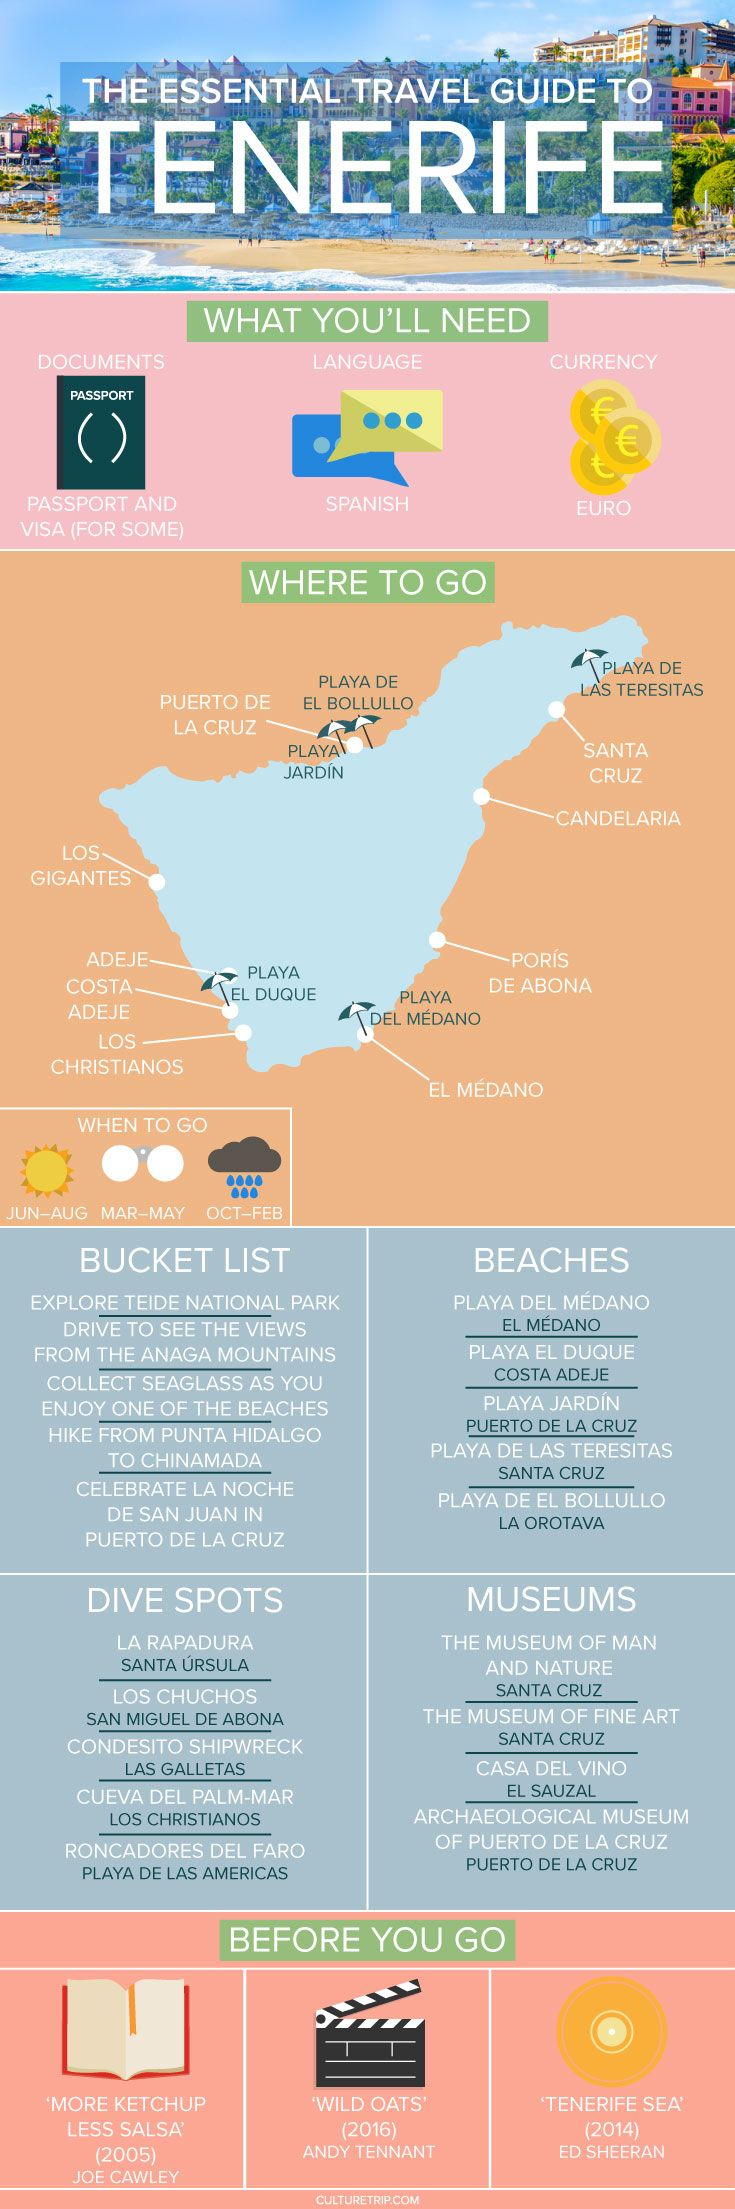 The Essential Travel Guide to Tenerife (Infographic)